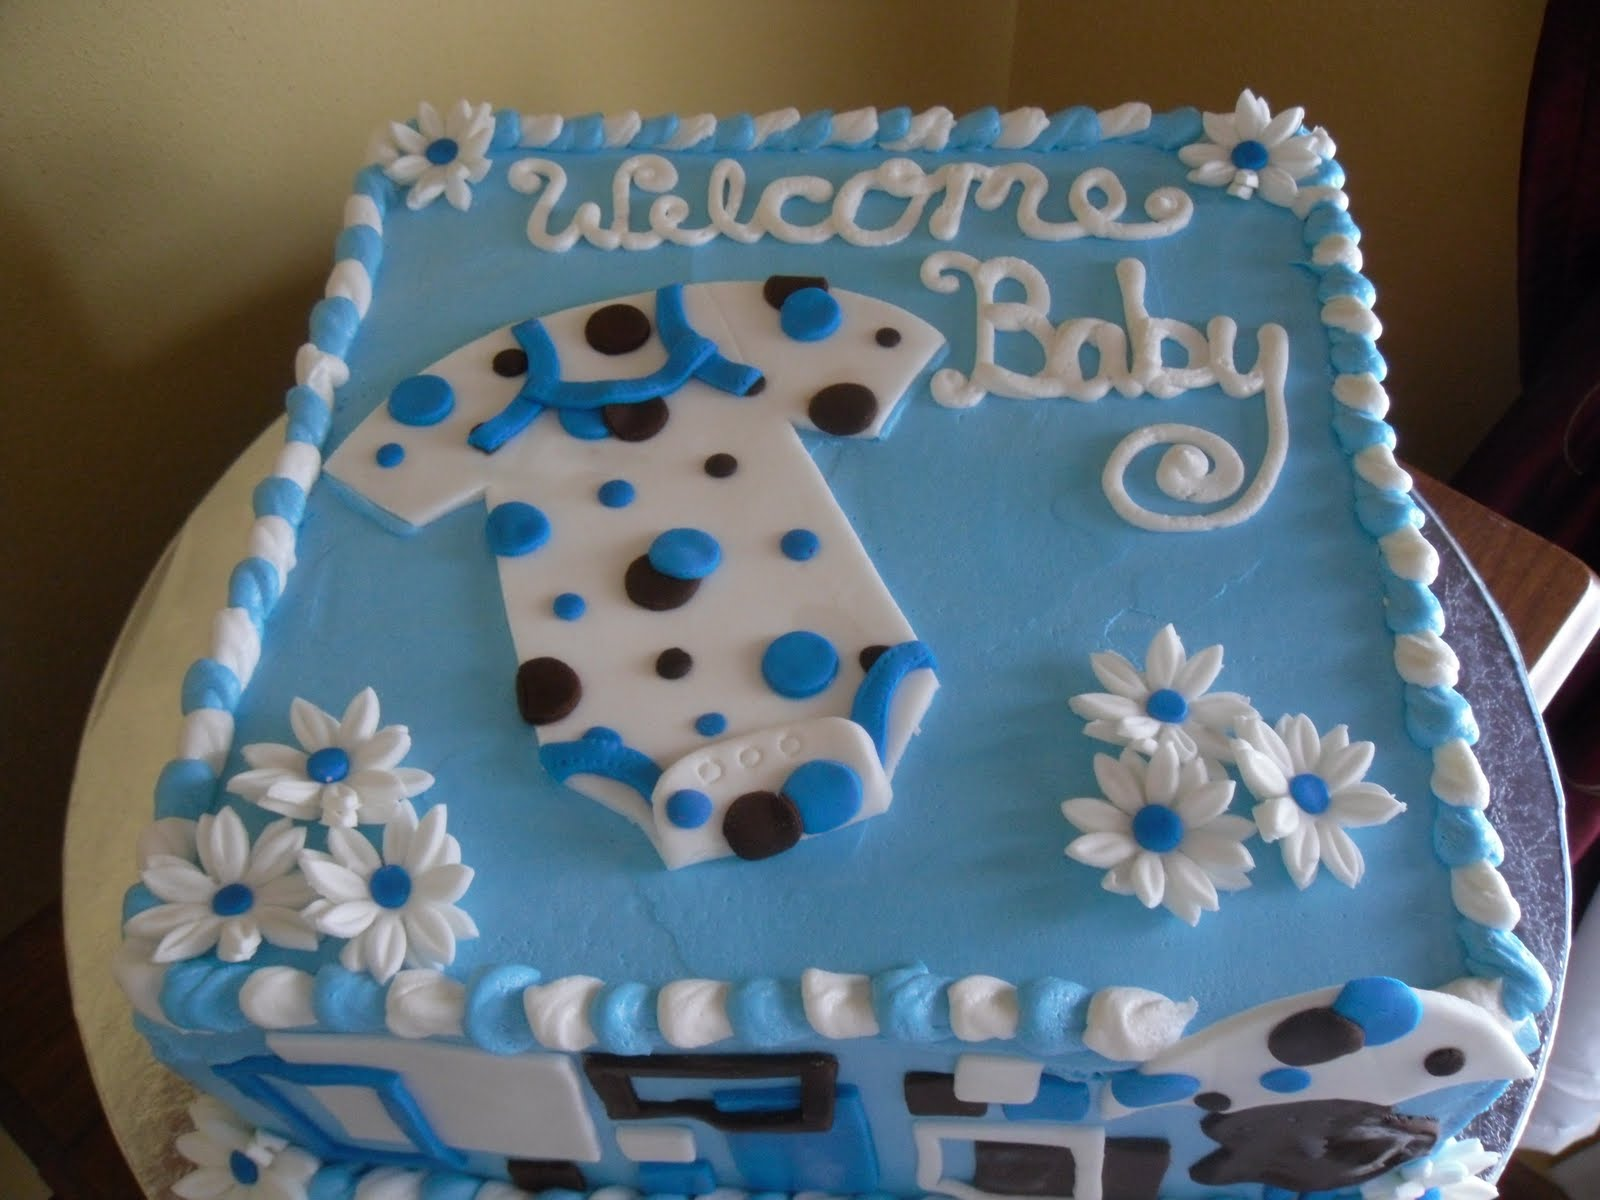 10 Gorgeous Cake Designs For Baby Shower | CAKE DESIGN AND ...